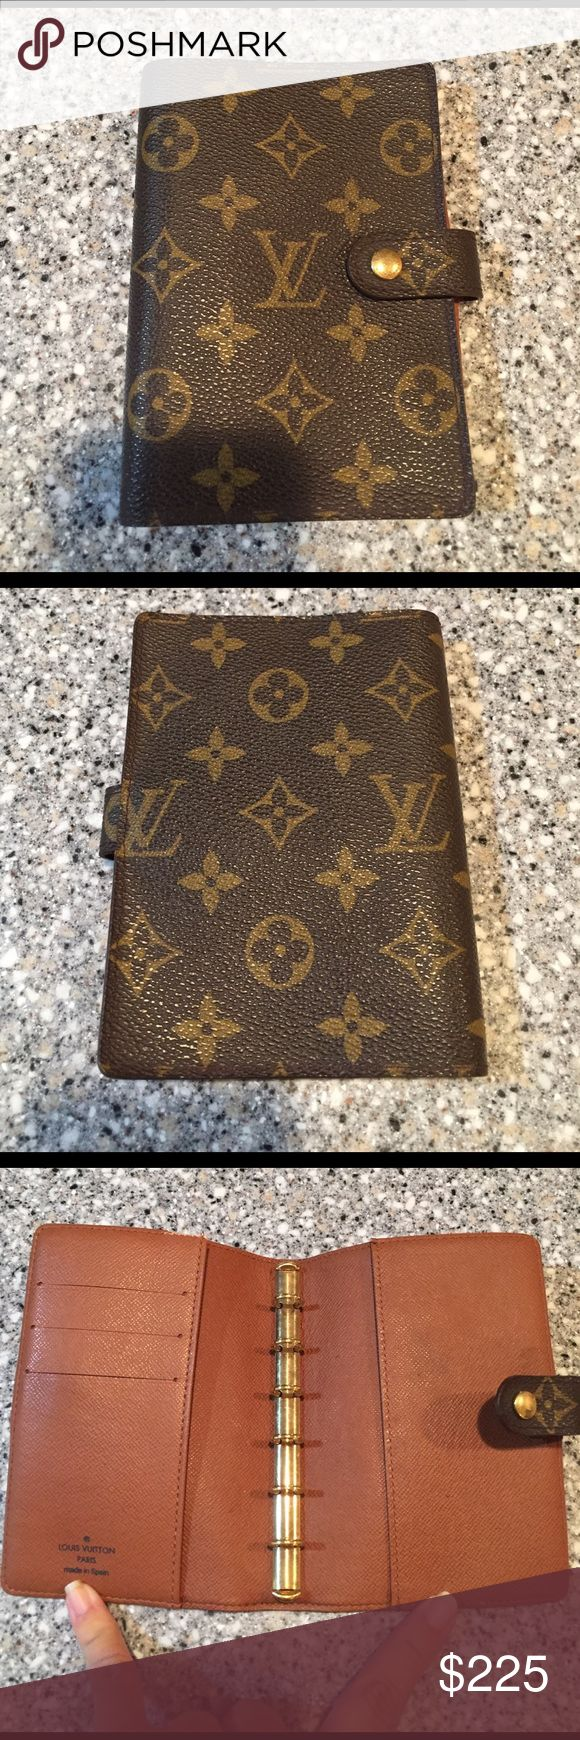 Louis Vuitton Day Planner Agenda Used and authentic. Louis Vuitton Agenda in monogram. Exterior canvas is in perfect condition. Corners show no signs of wear. Only issues are the 2 shown in the pix. Great item. I don't trade ever. And not looking for lowball offers. Louis Vuitton Bags